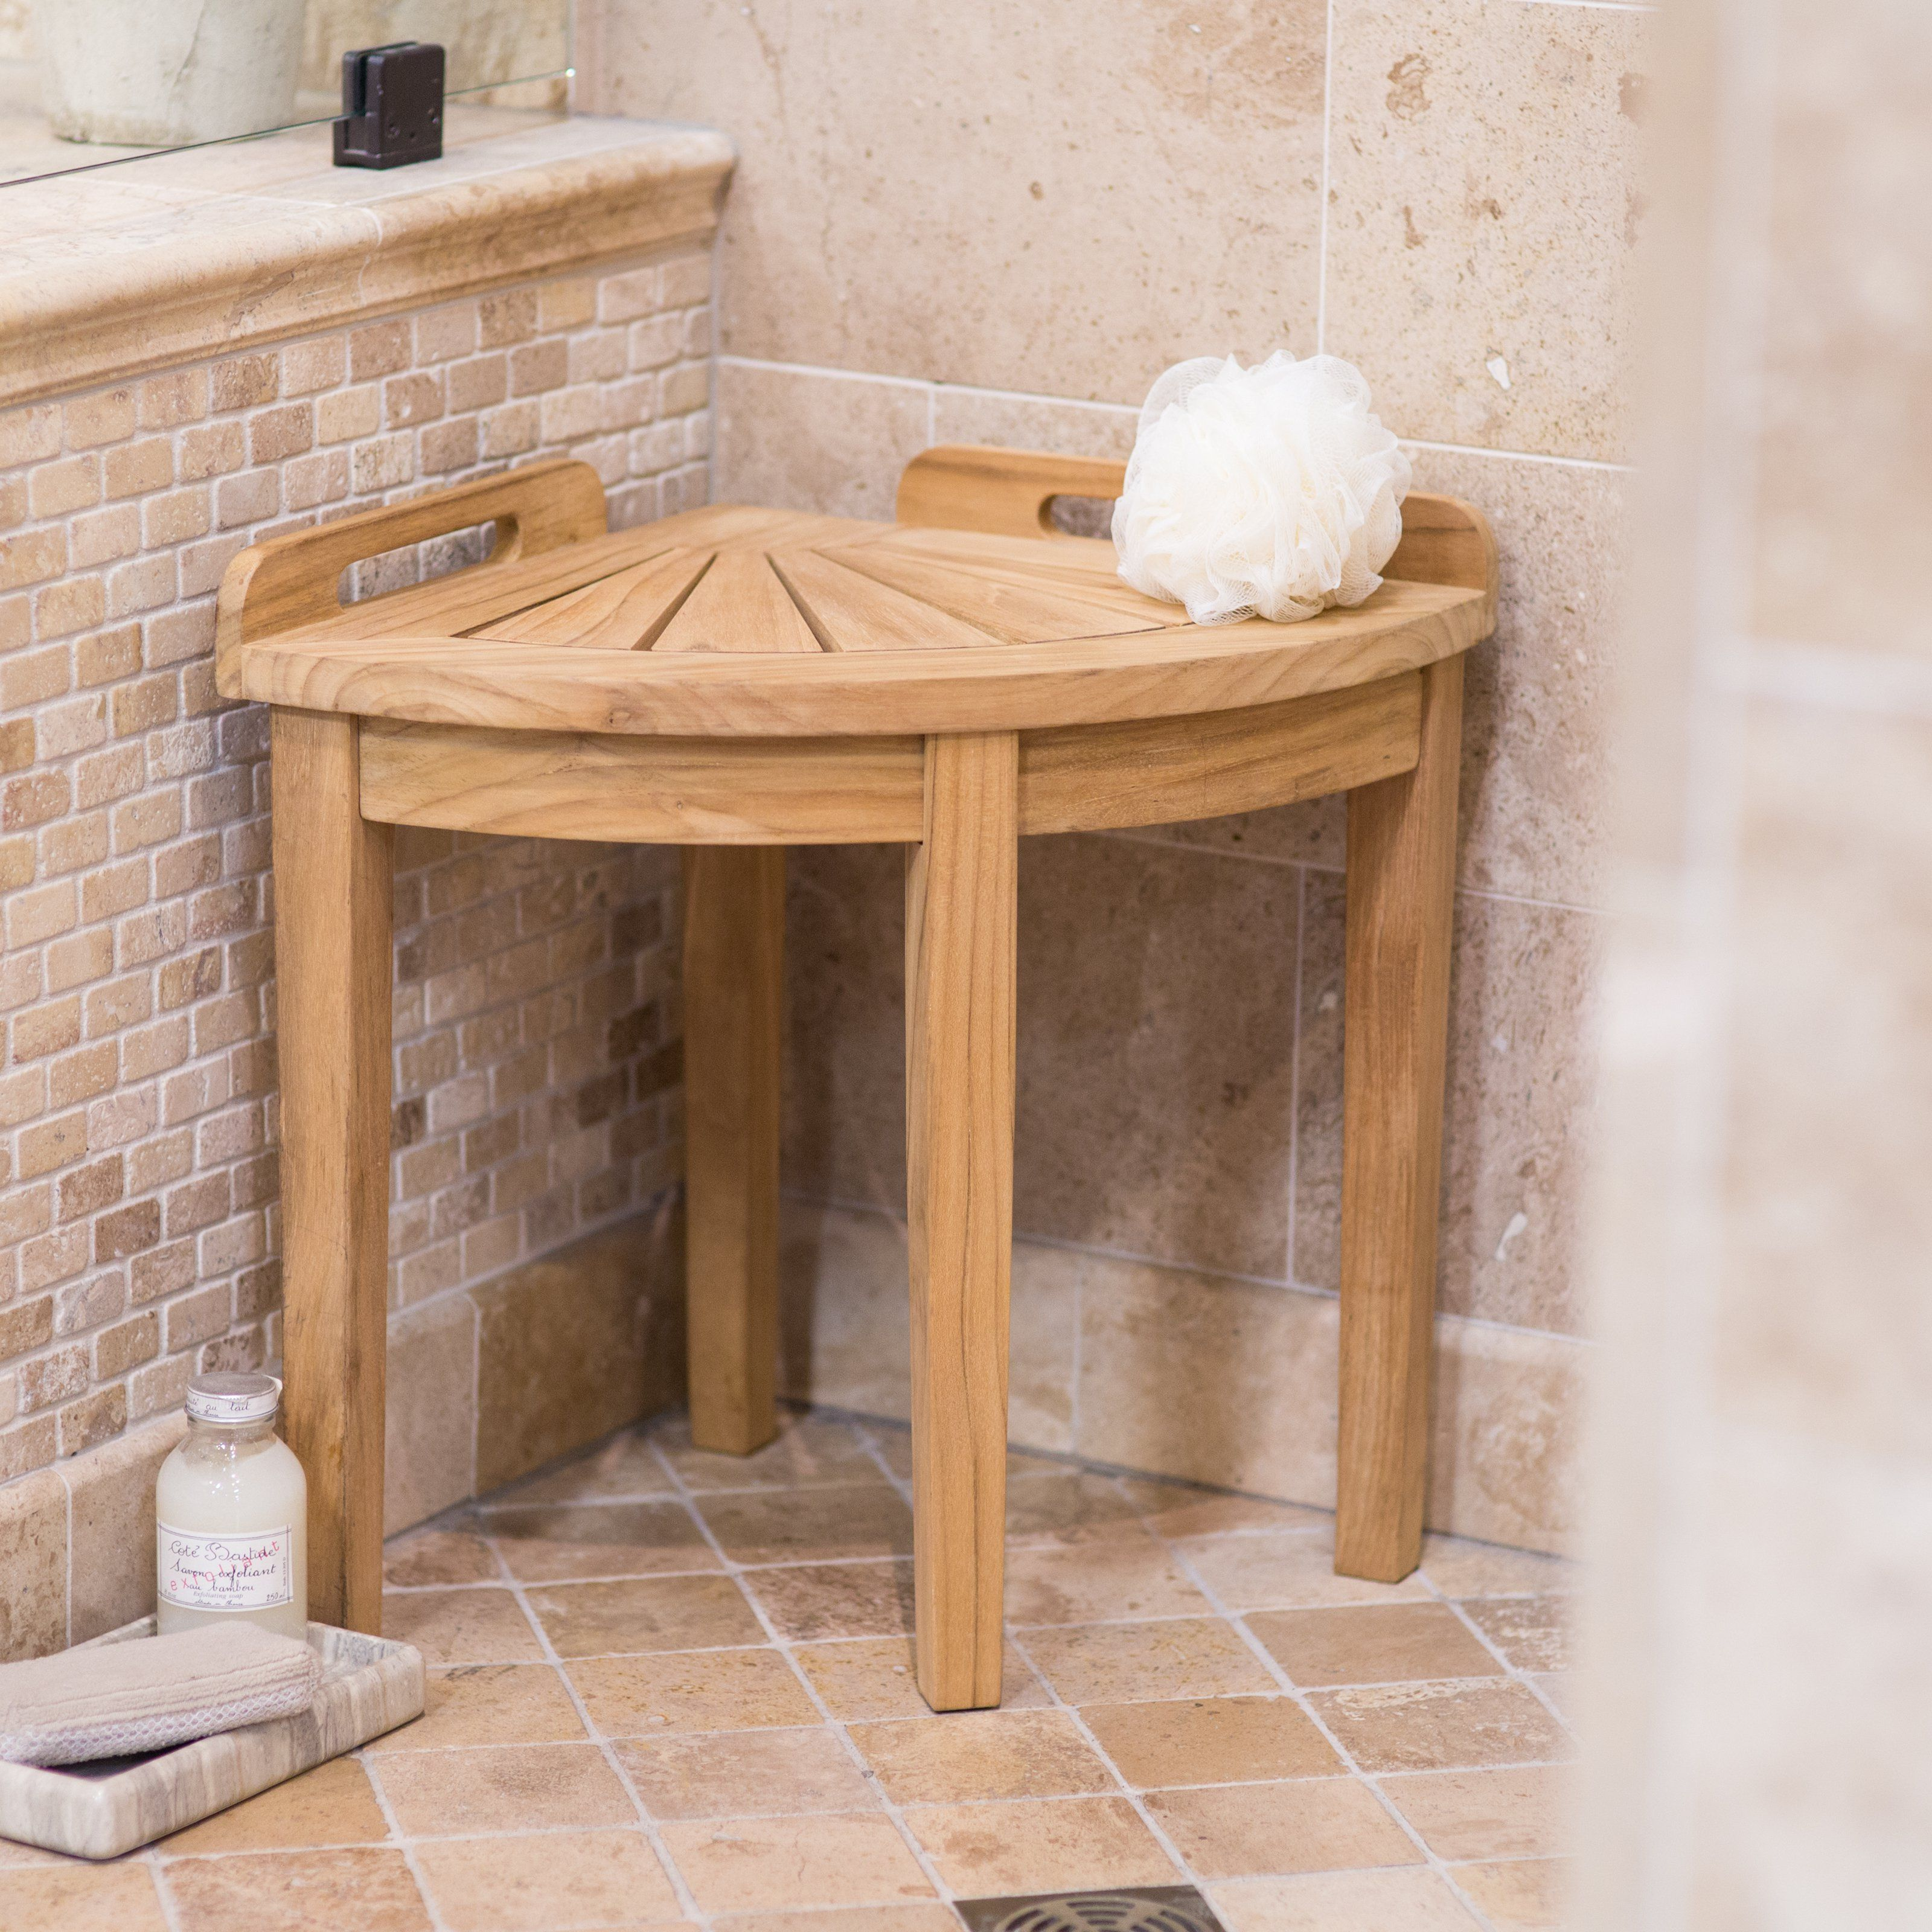 bench shower projects diy ana redwood white stool corner